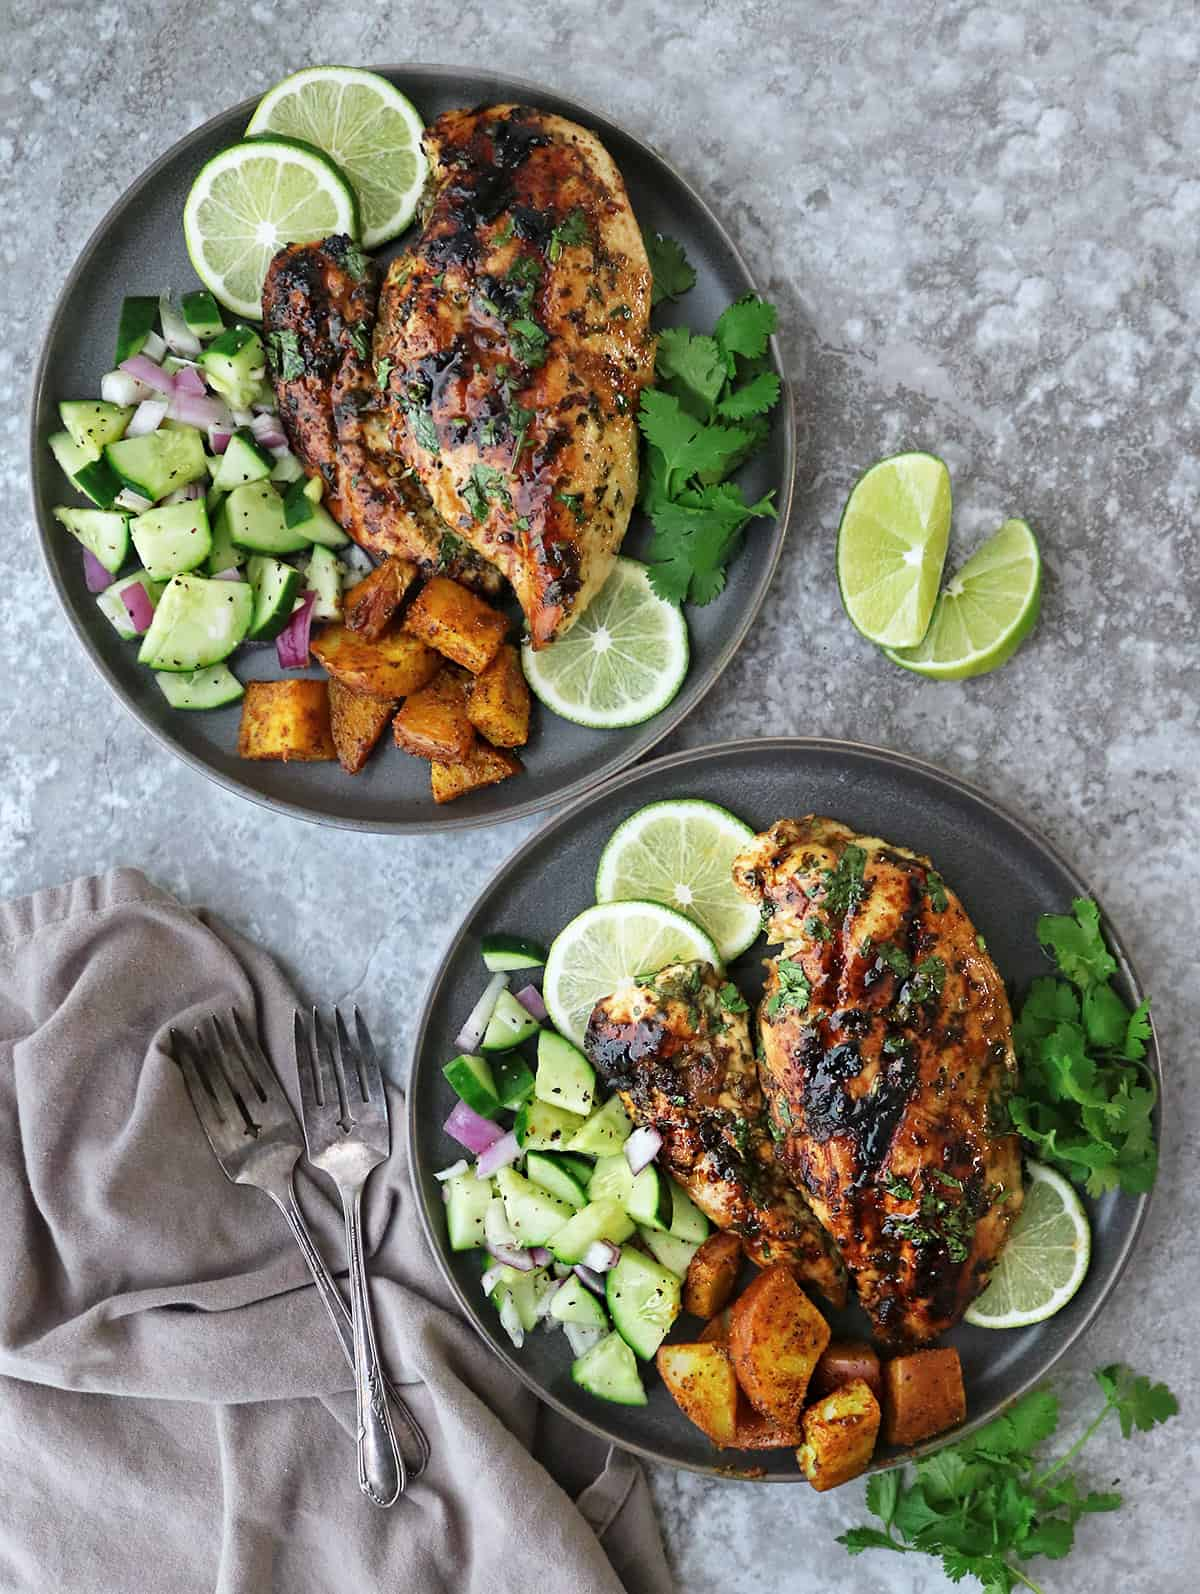 Two plates with a delicious dinner of grilled cilantro lime chicken